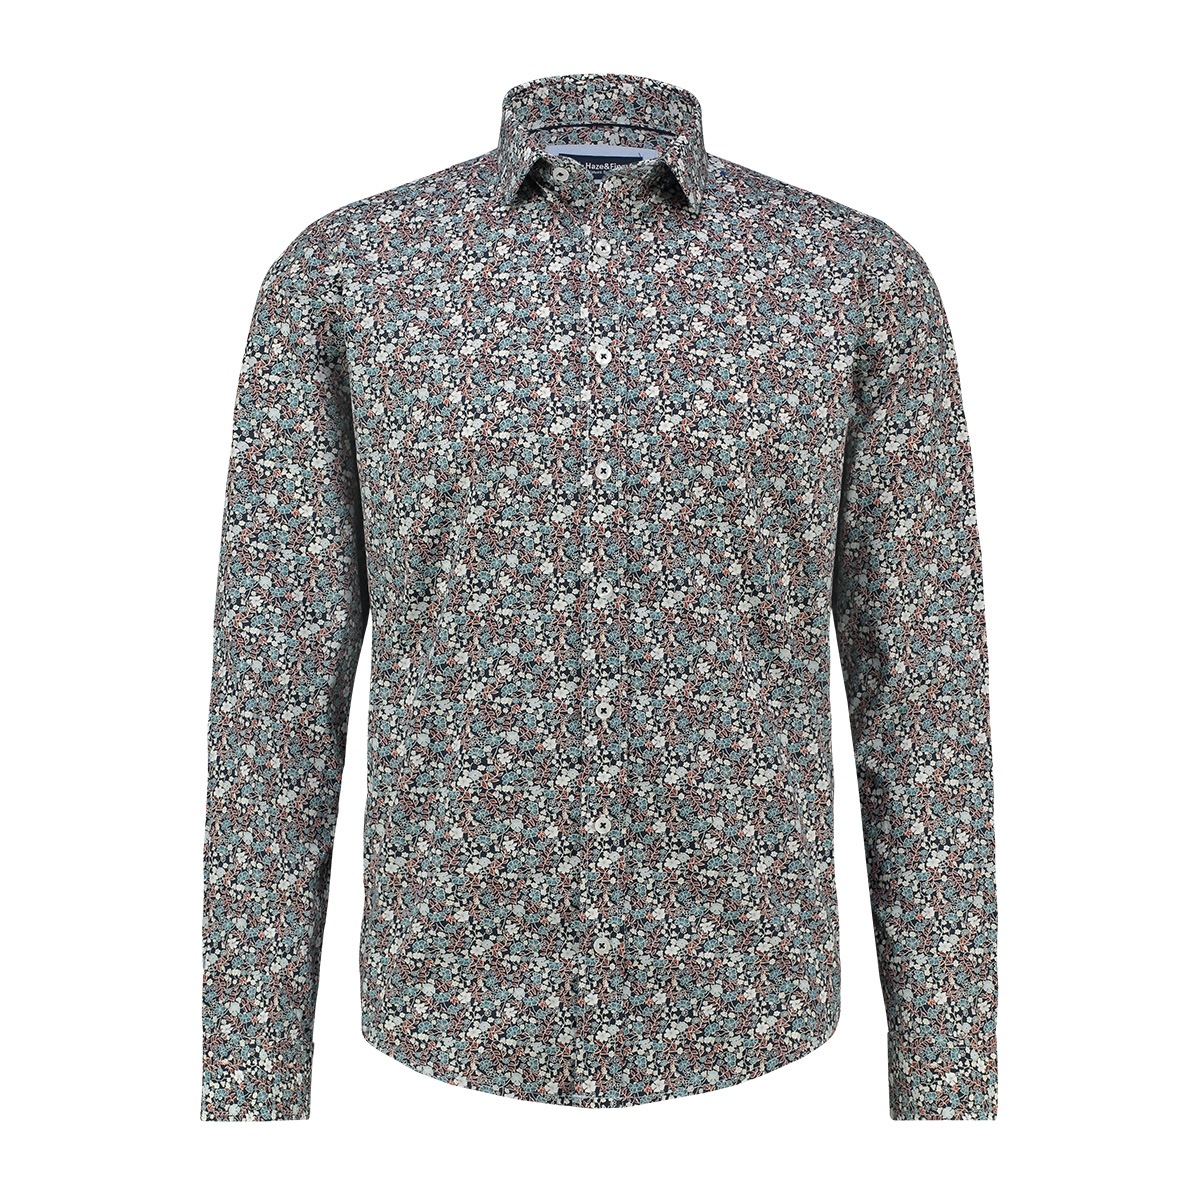 shirt aop stretch mc13 0100 05 haze & finn overhemd indigo floral